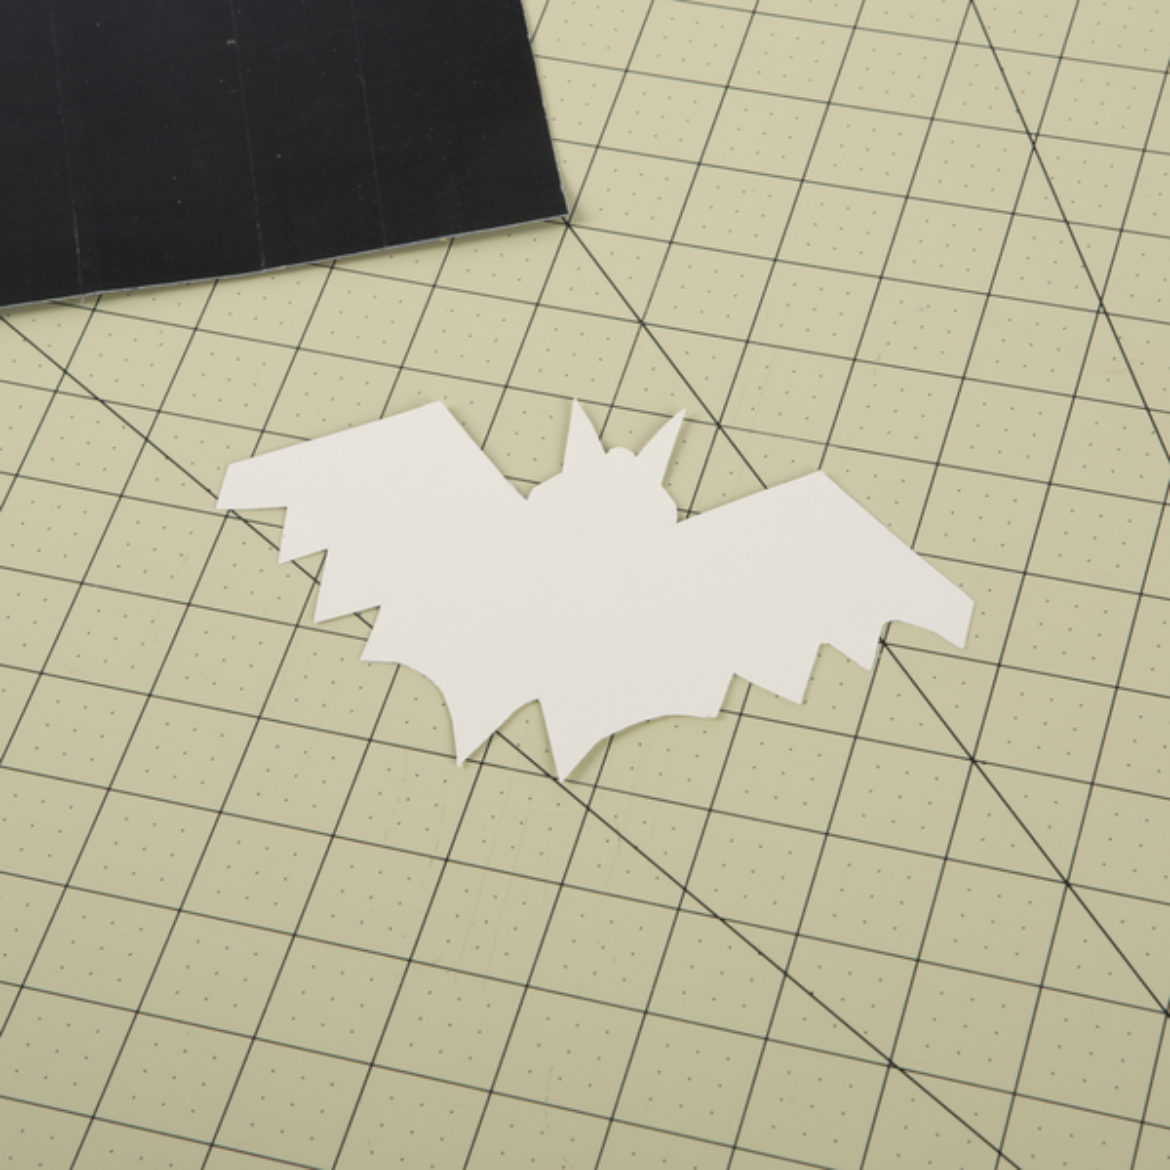 Bat template cut out of card stock